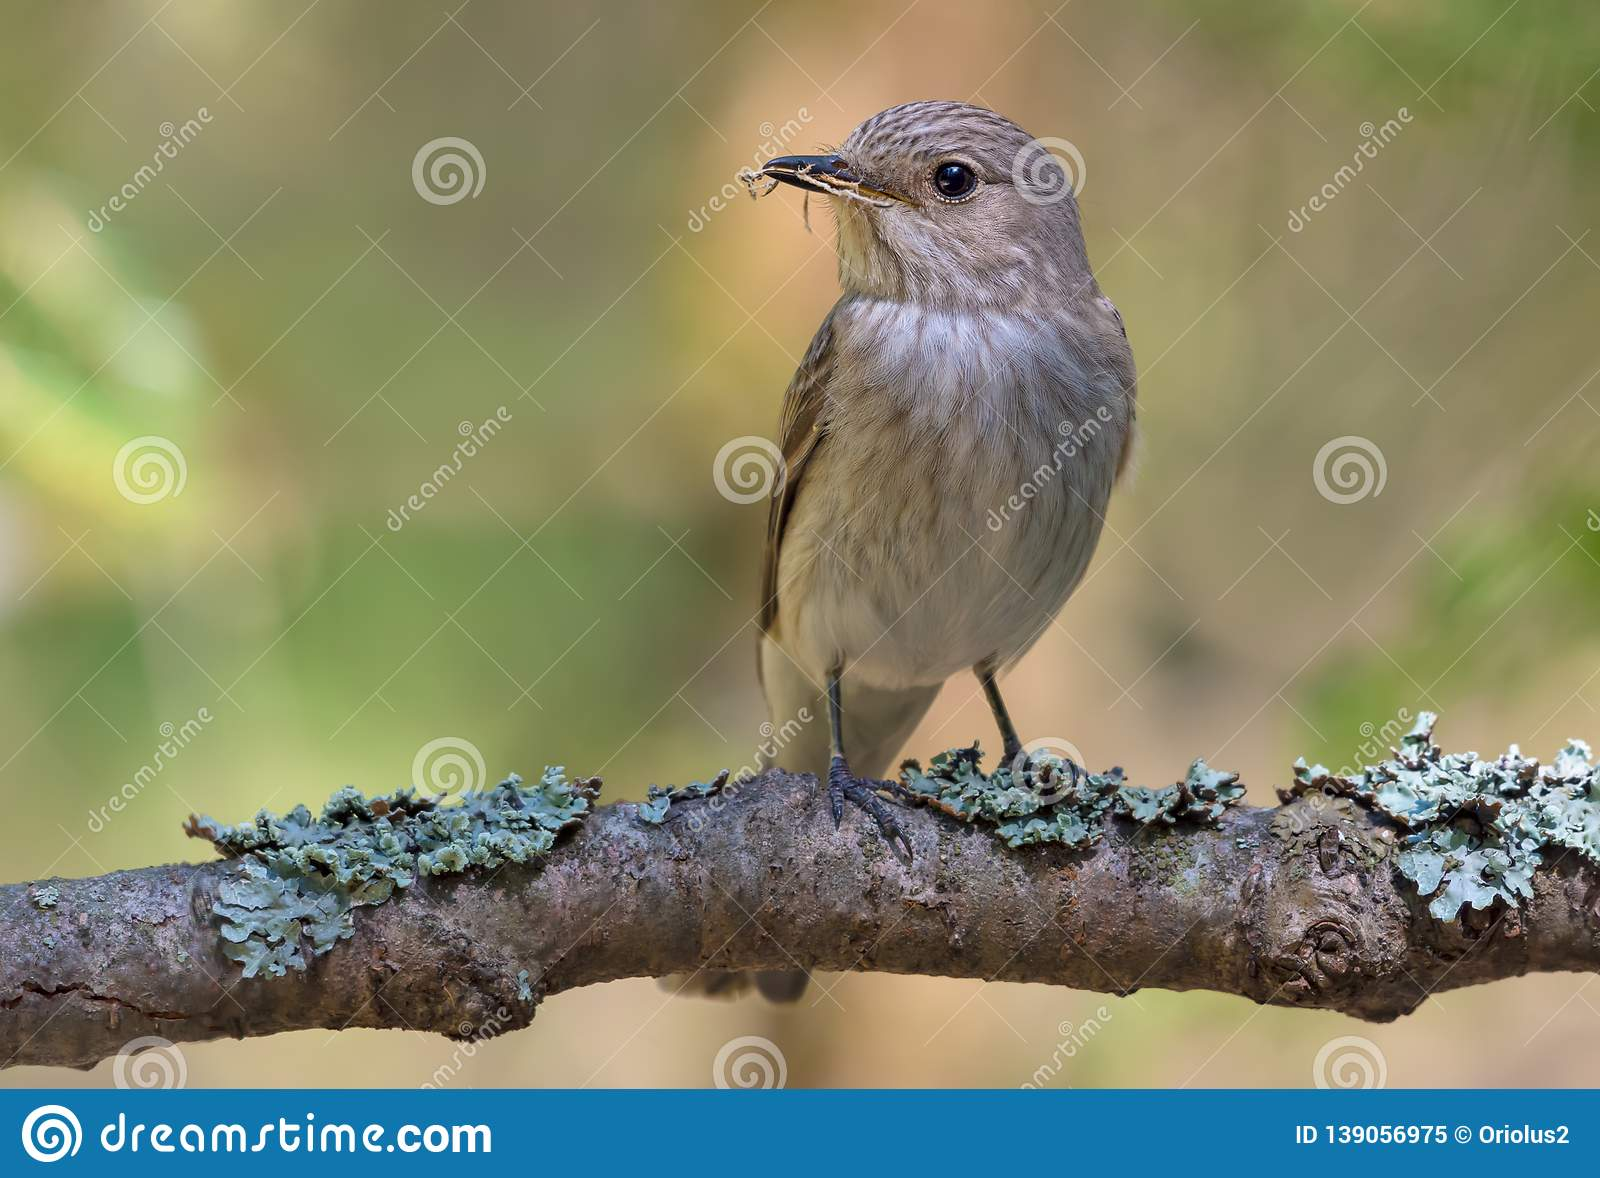 Spotted Flycatcher perched on a thick lichen covered branch in sweet light